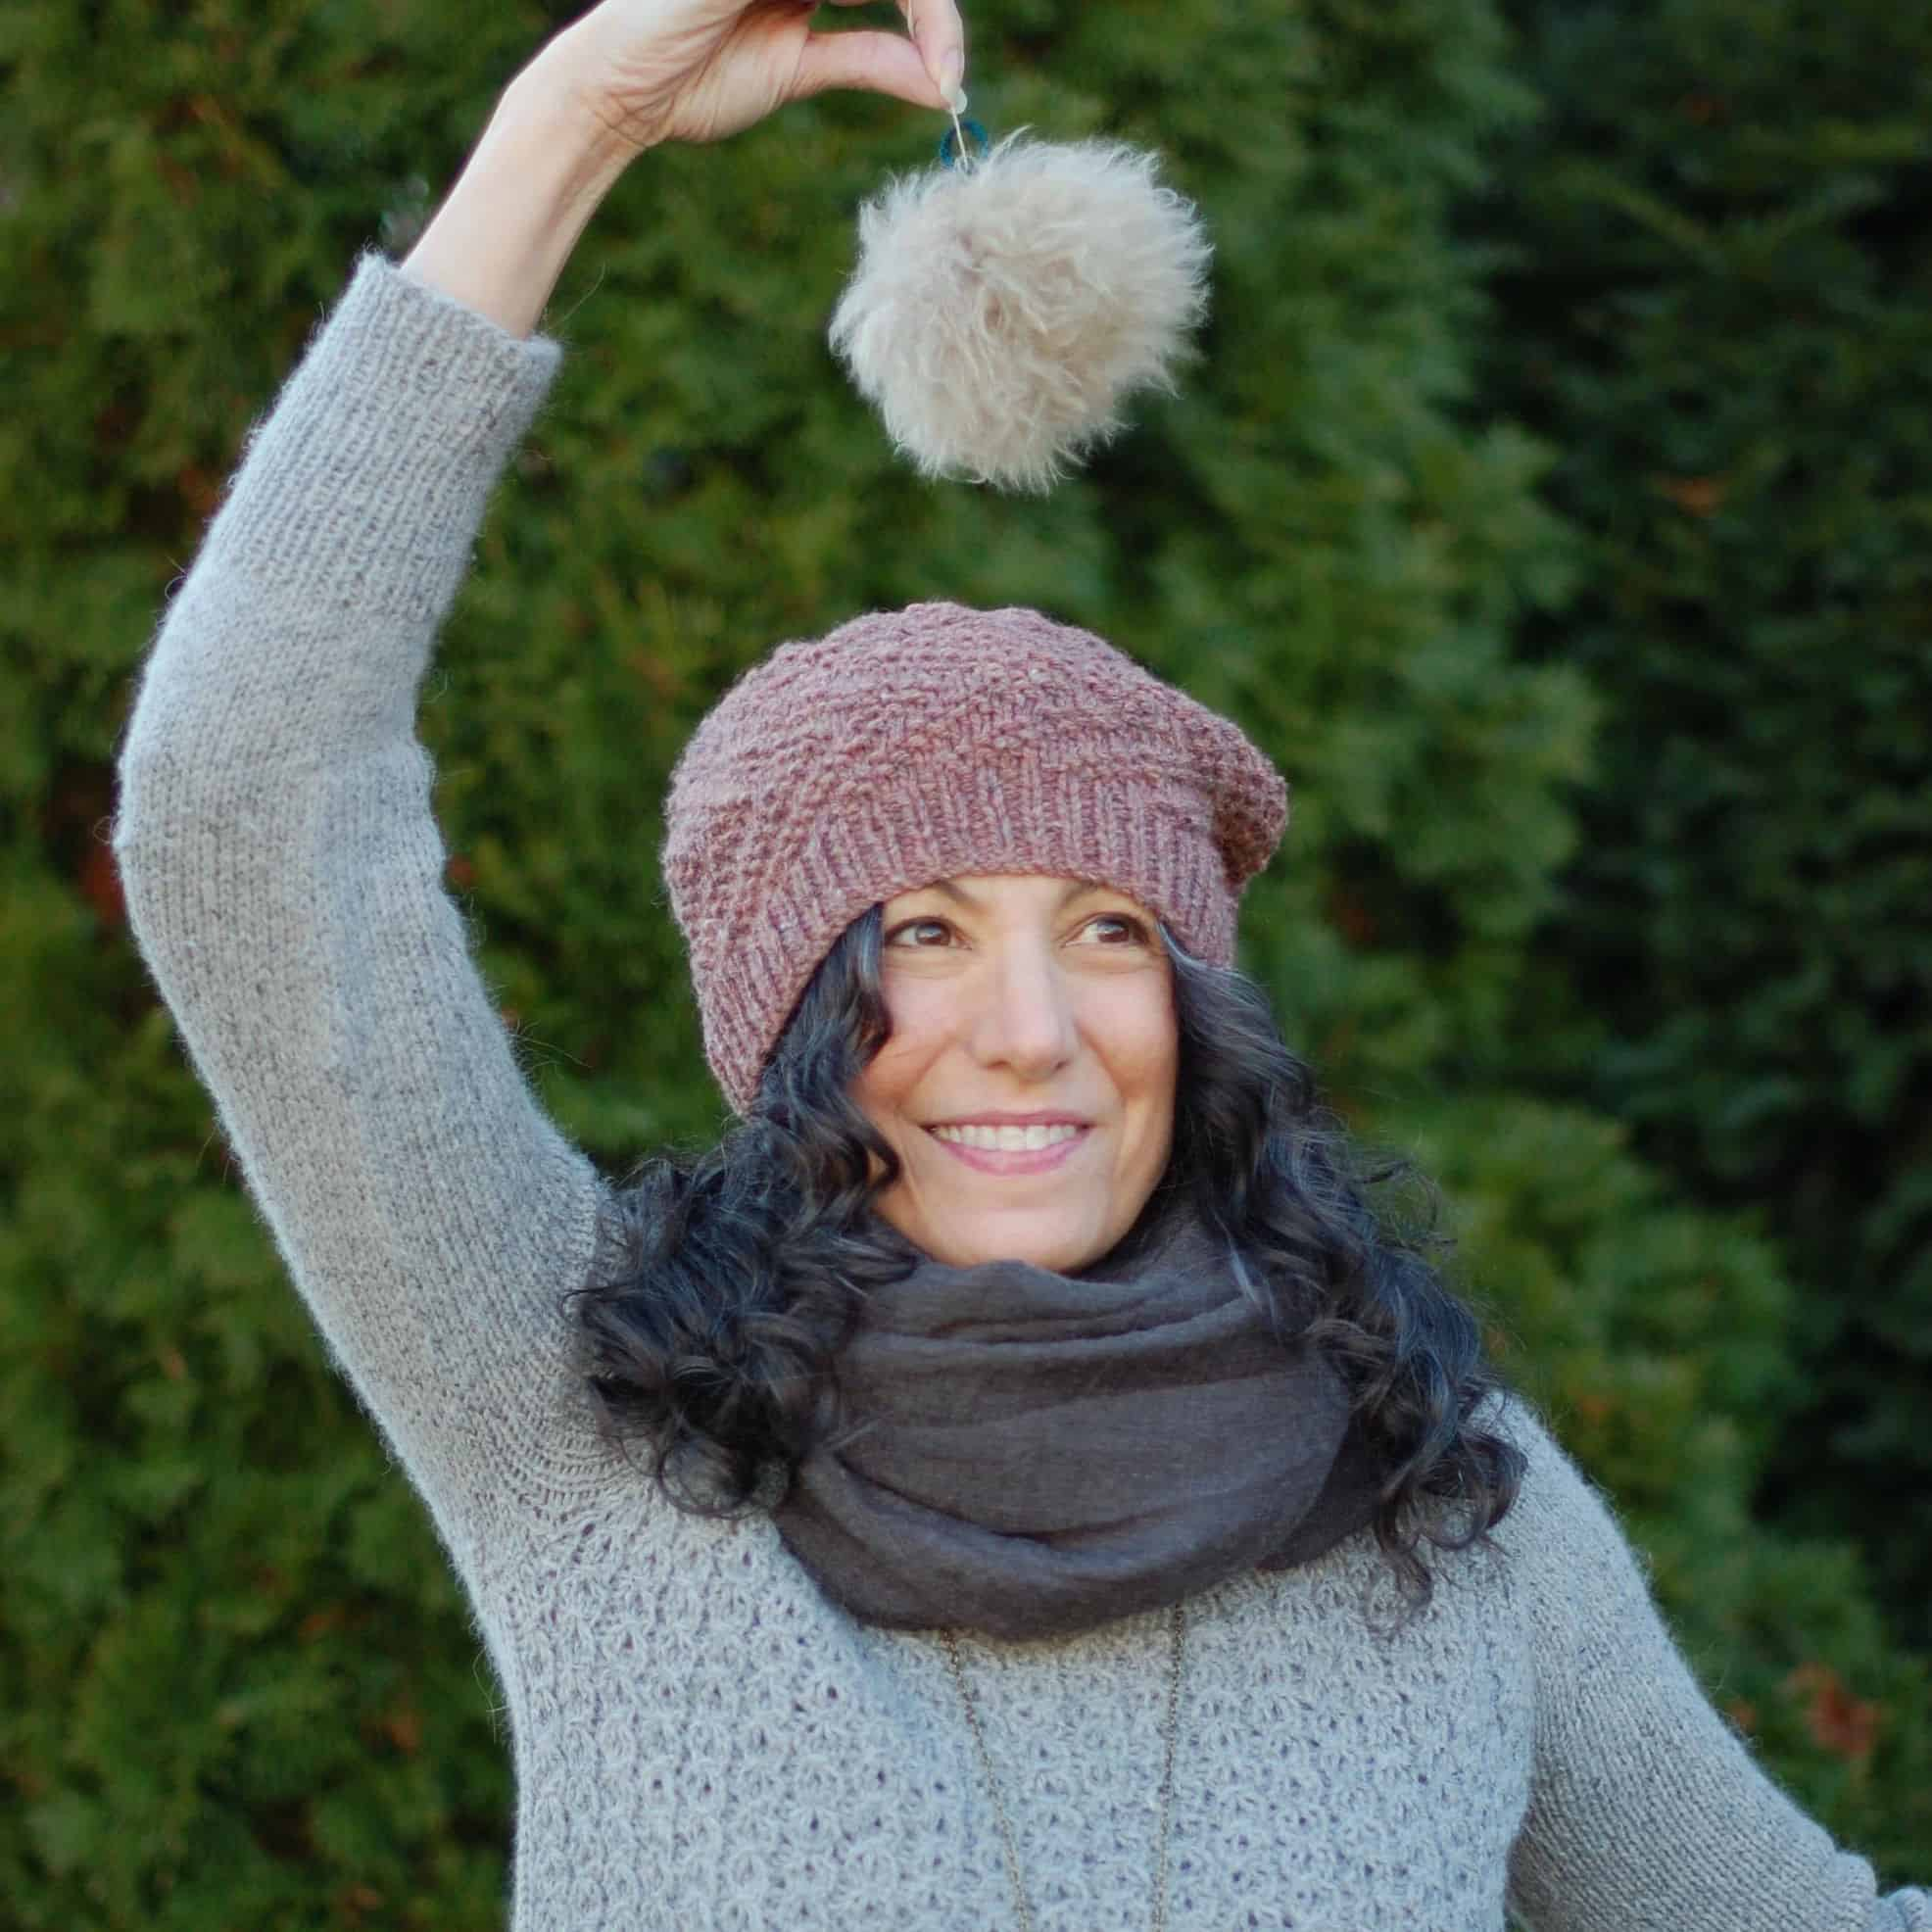 A woman holds a white fur pom-pom over a purple knit hat.